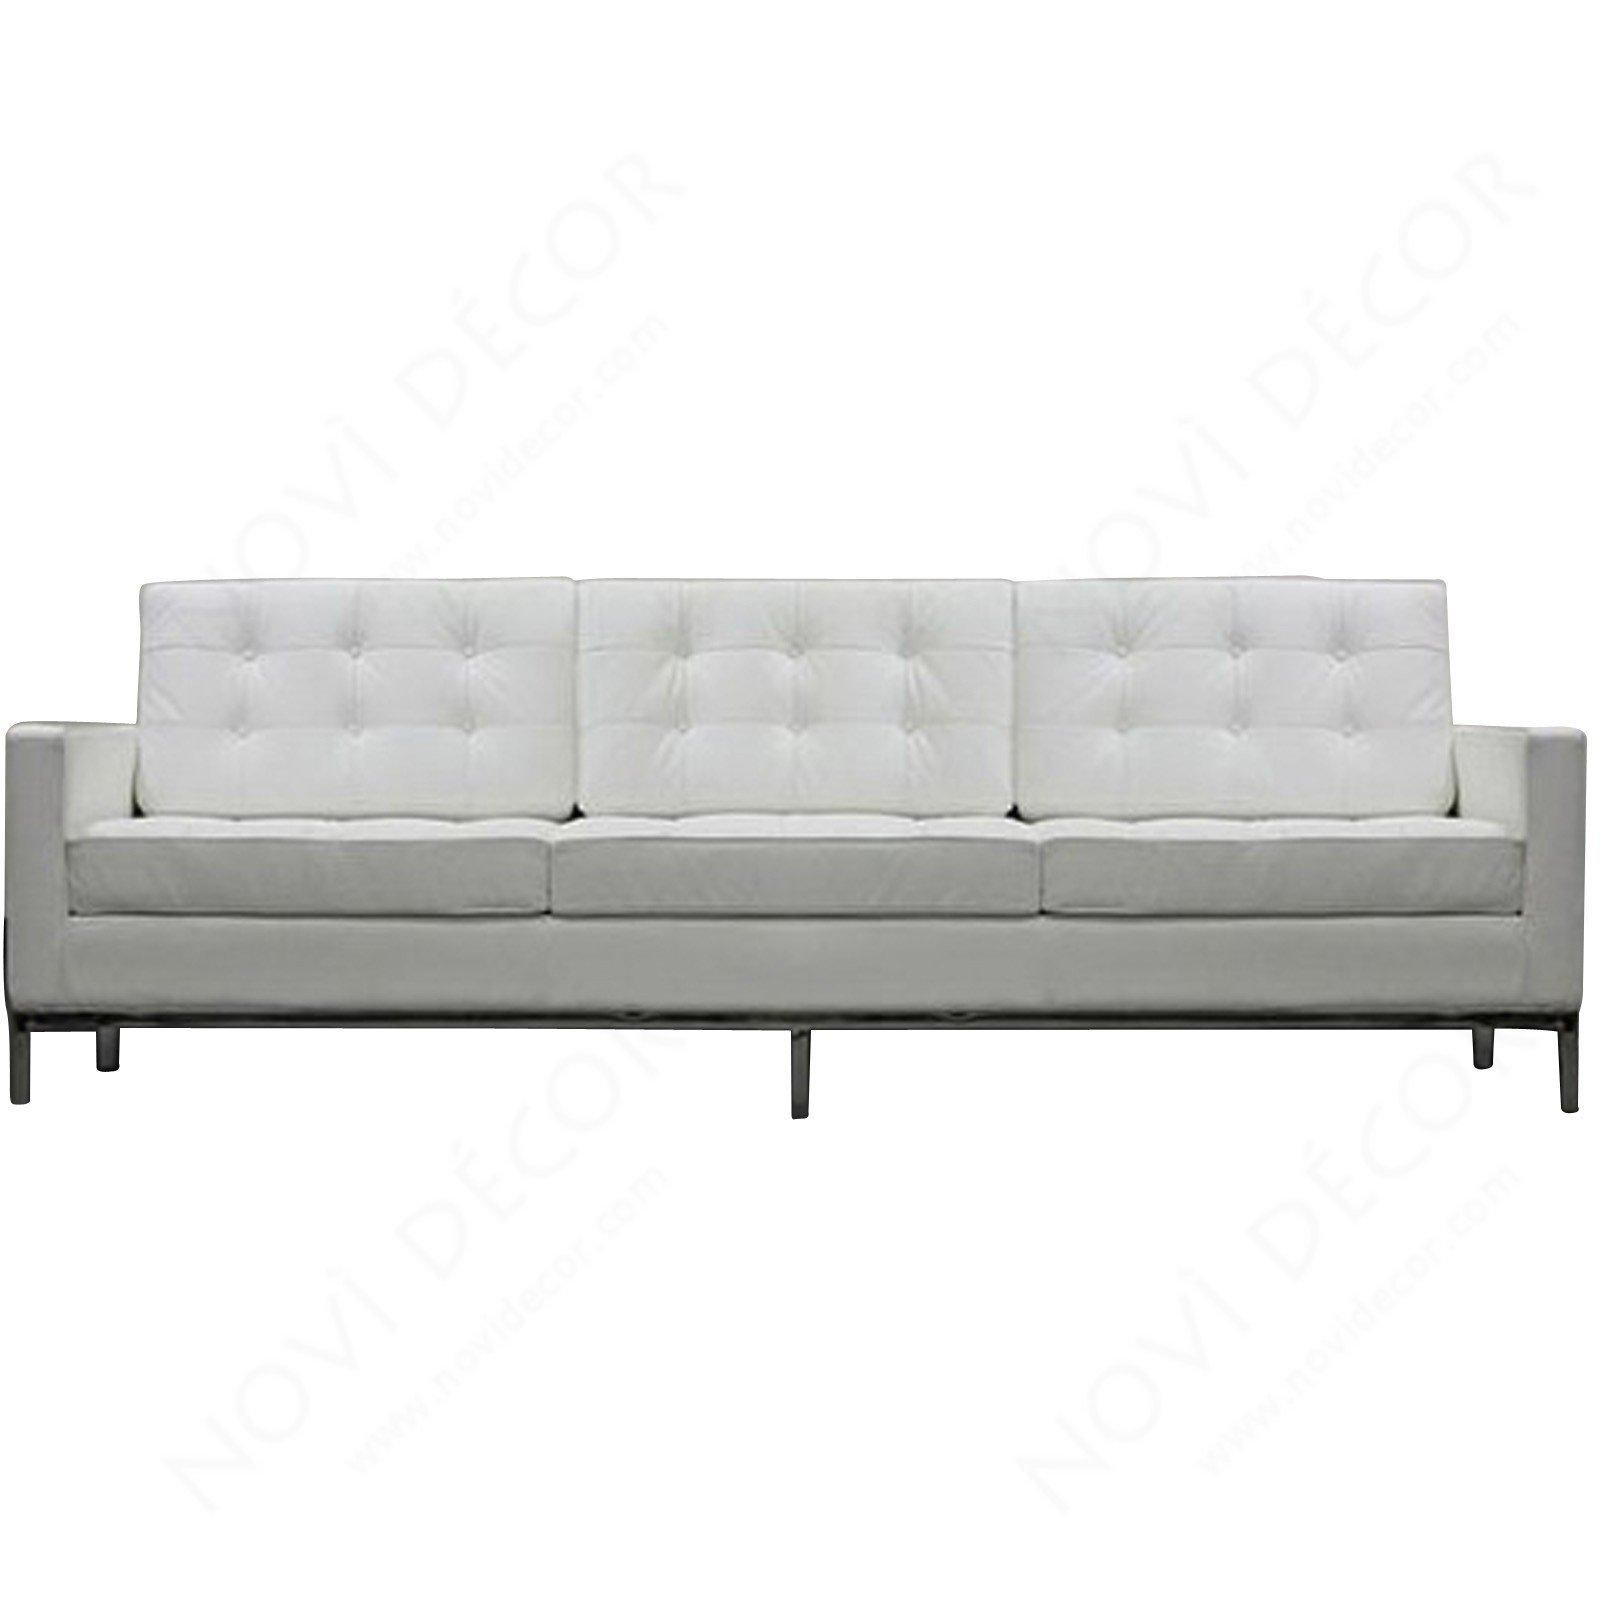 best florence knoll sofa reproduction reclining reviews 2018 20 ideas leather sofas